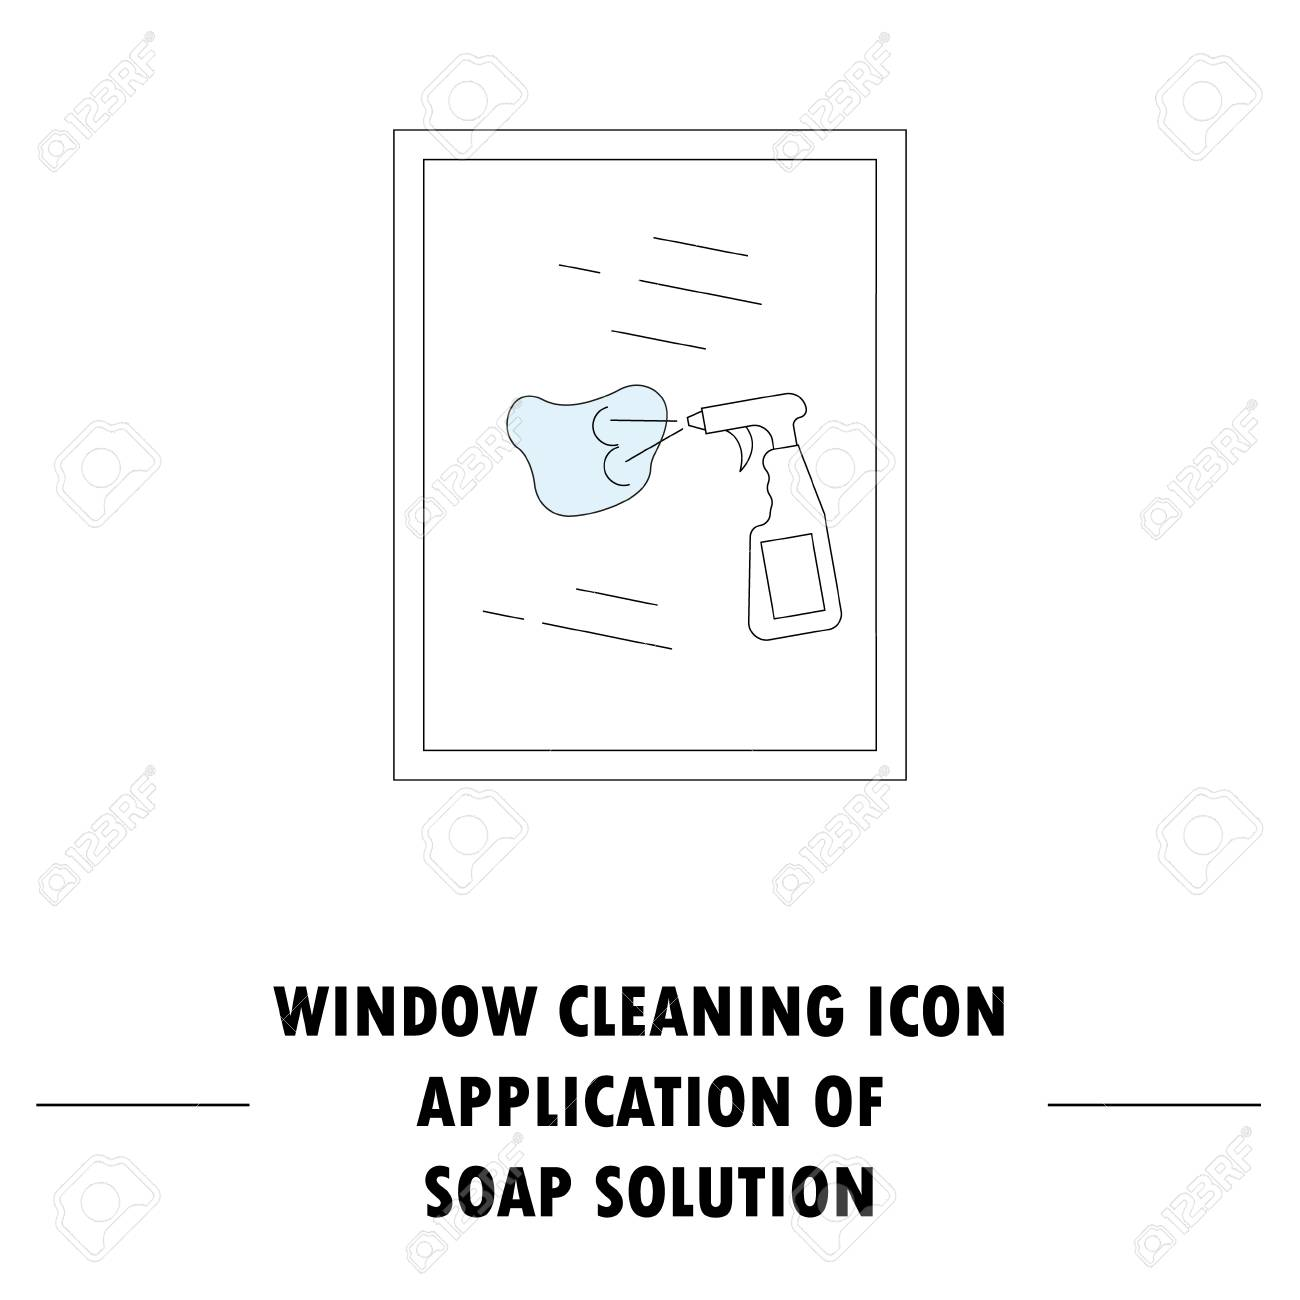 Window cleaning icon high quality outline pictogram of window high quality outline pictogram of window cleaning vector color symbol for design website visit card mobile app logo etc ccuart Image collections